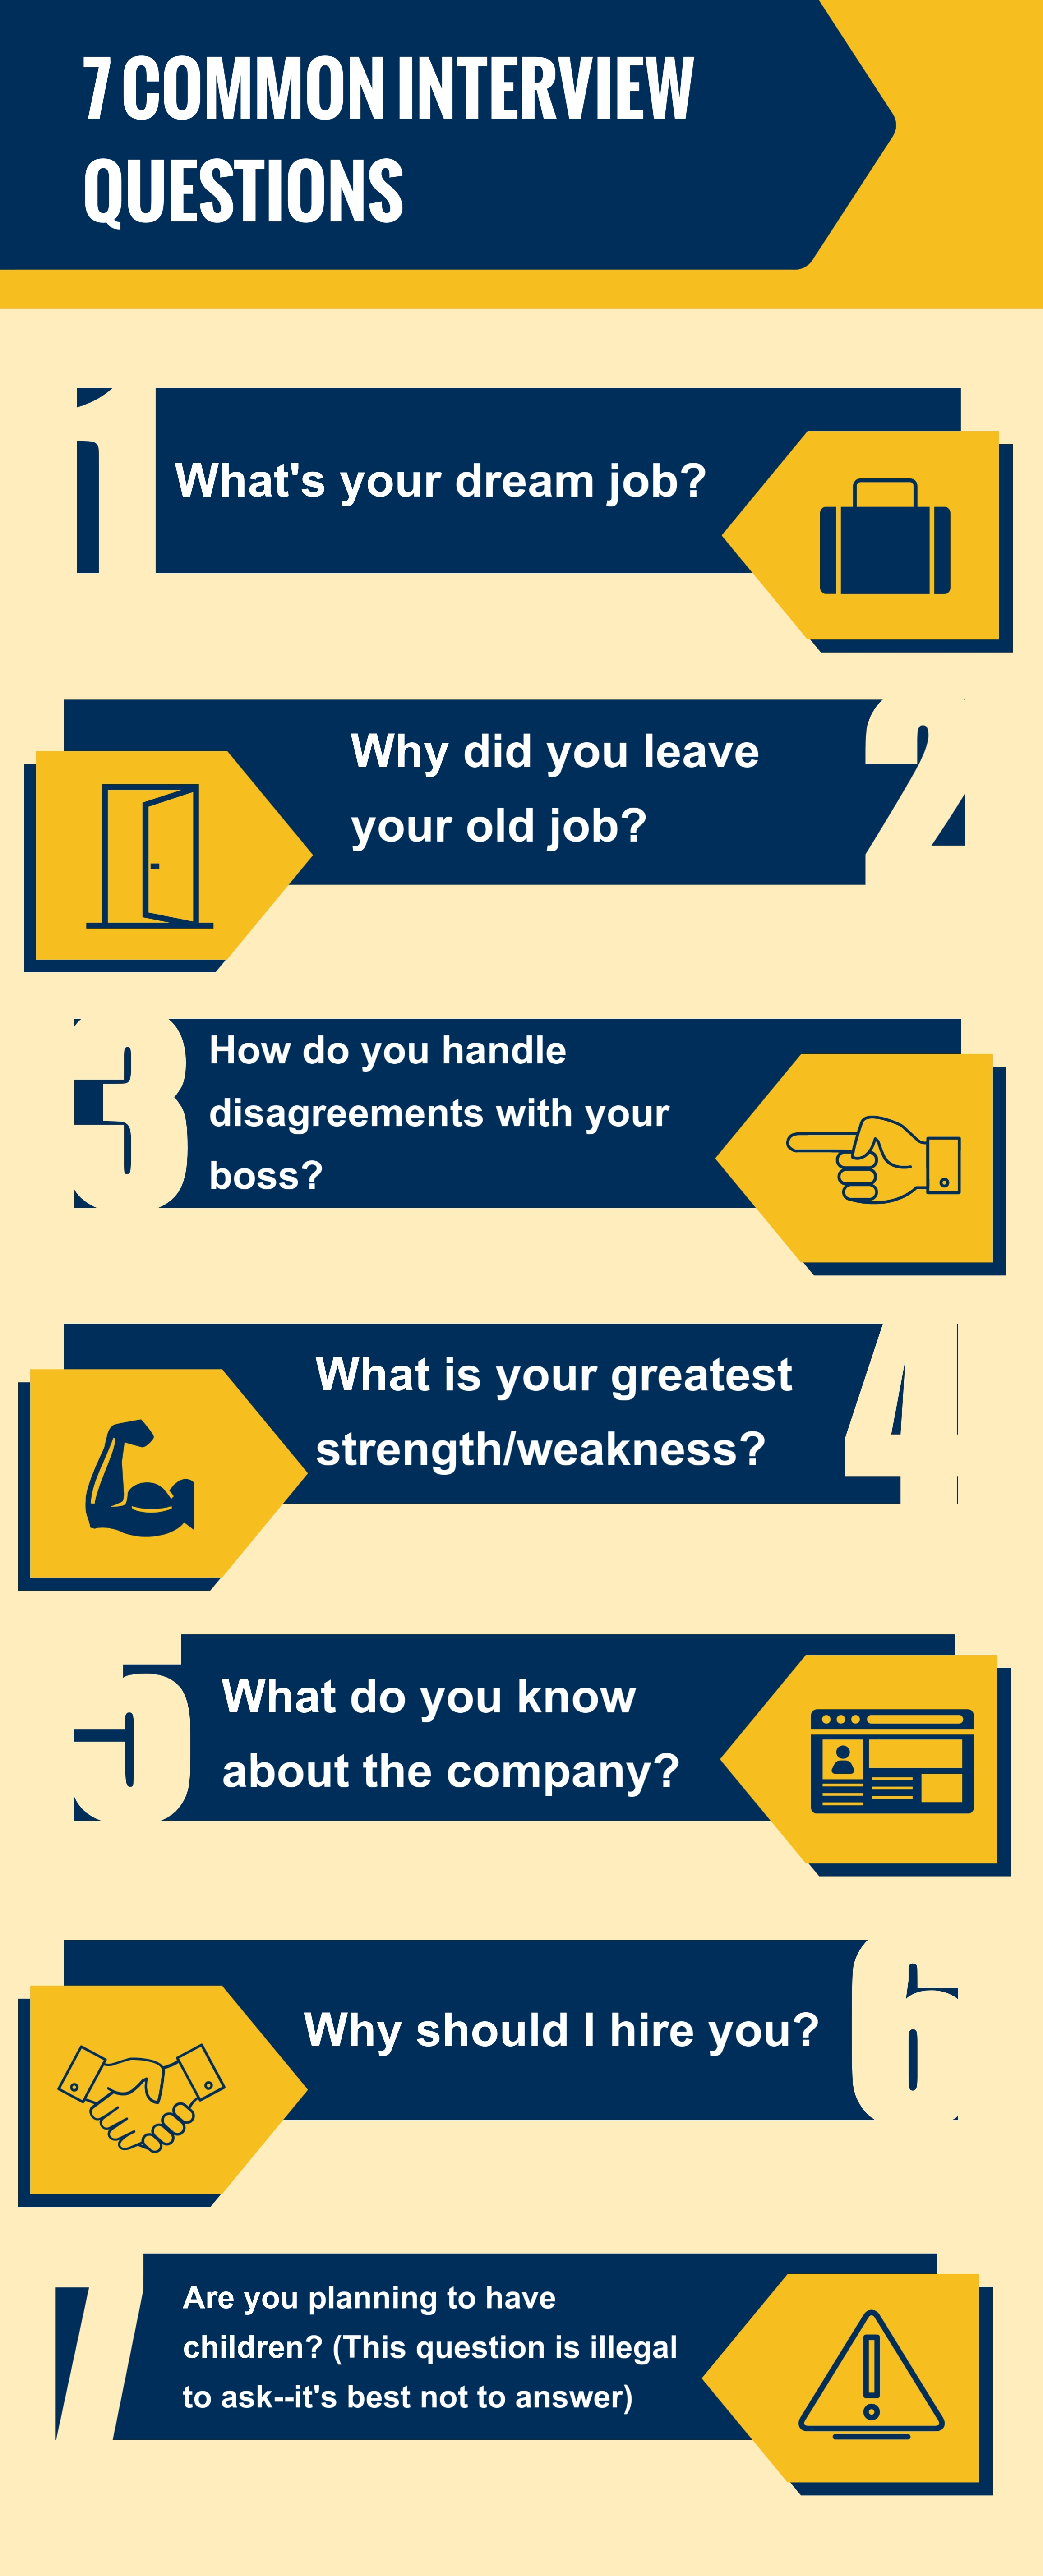 7 Common Interview Questions & Answers, VoiceLink Communications, Houston